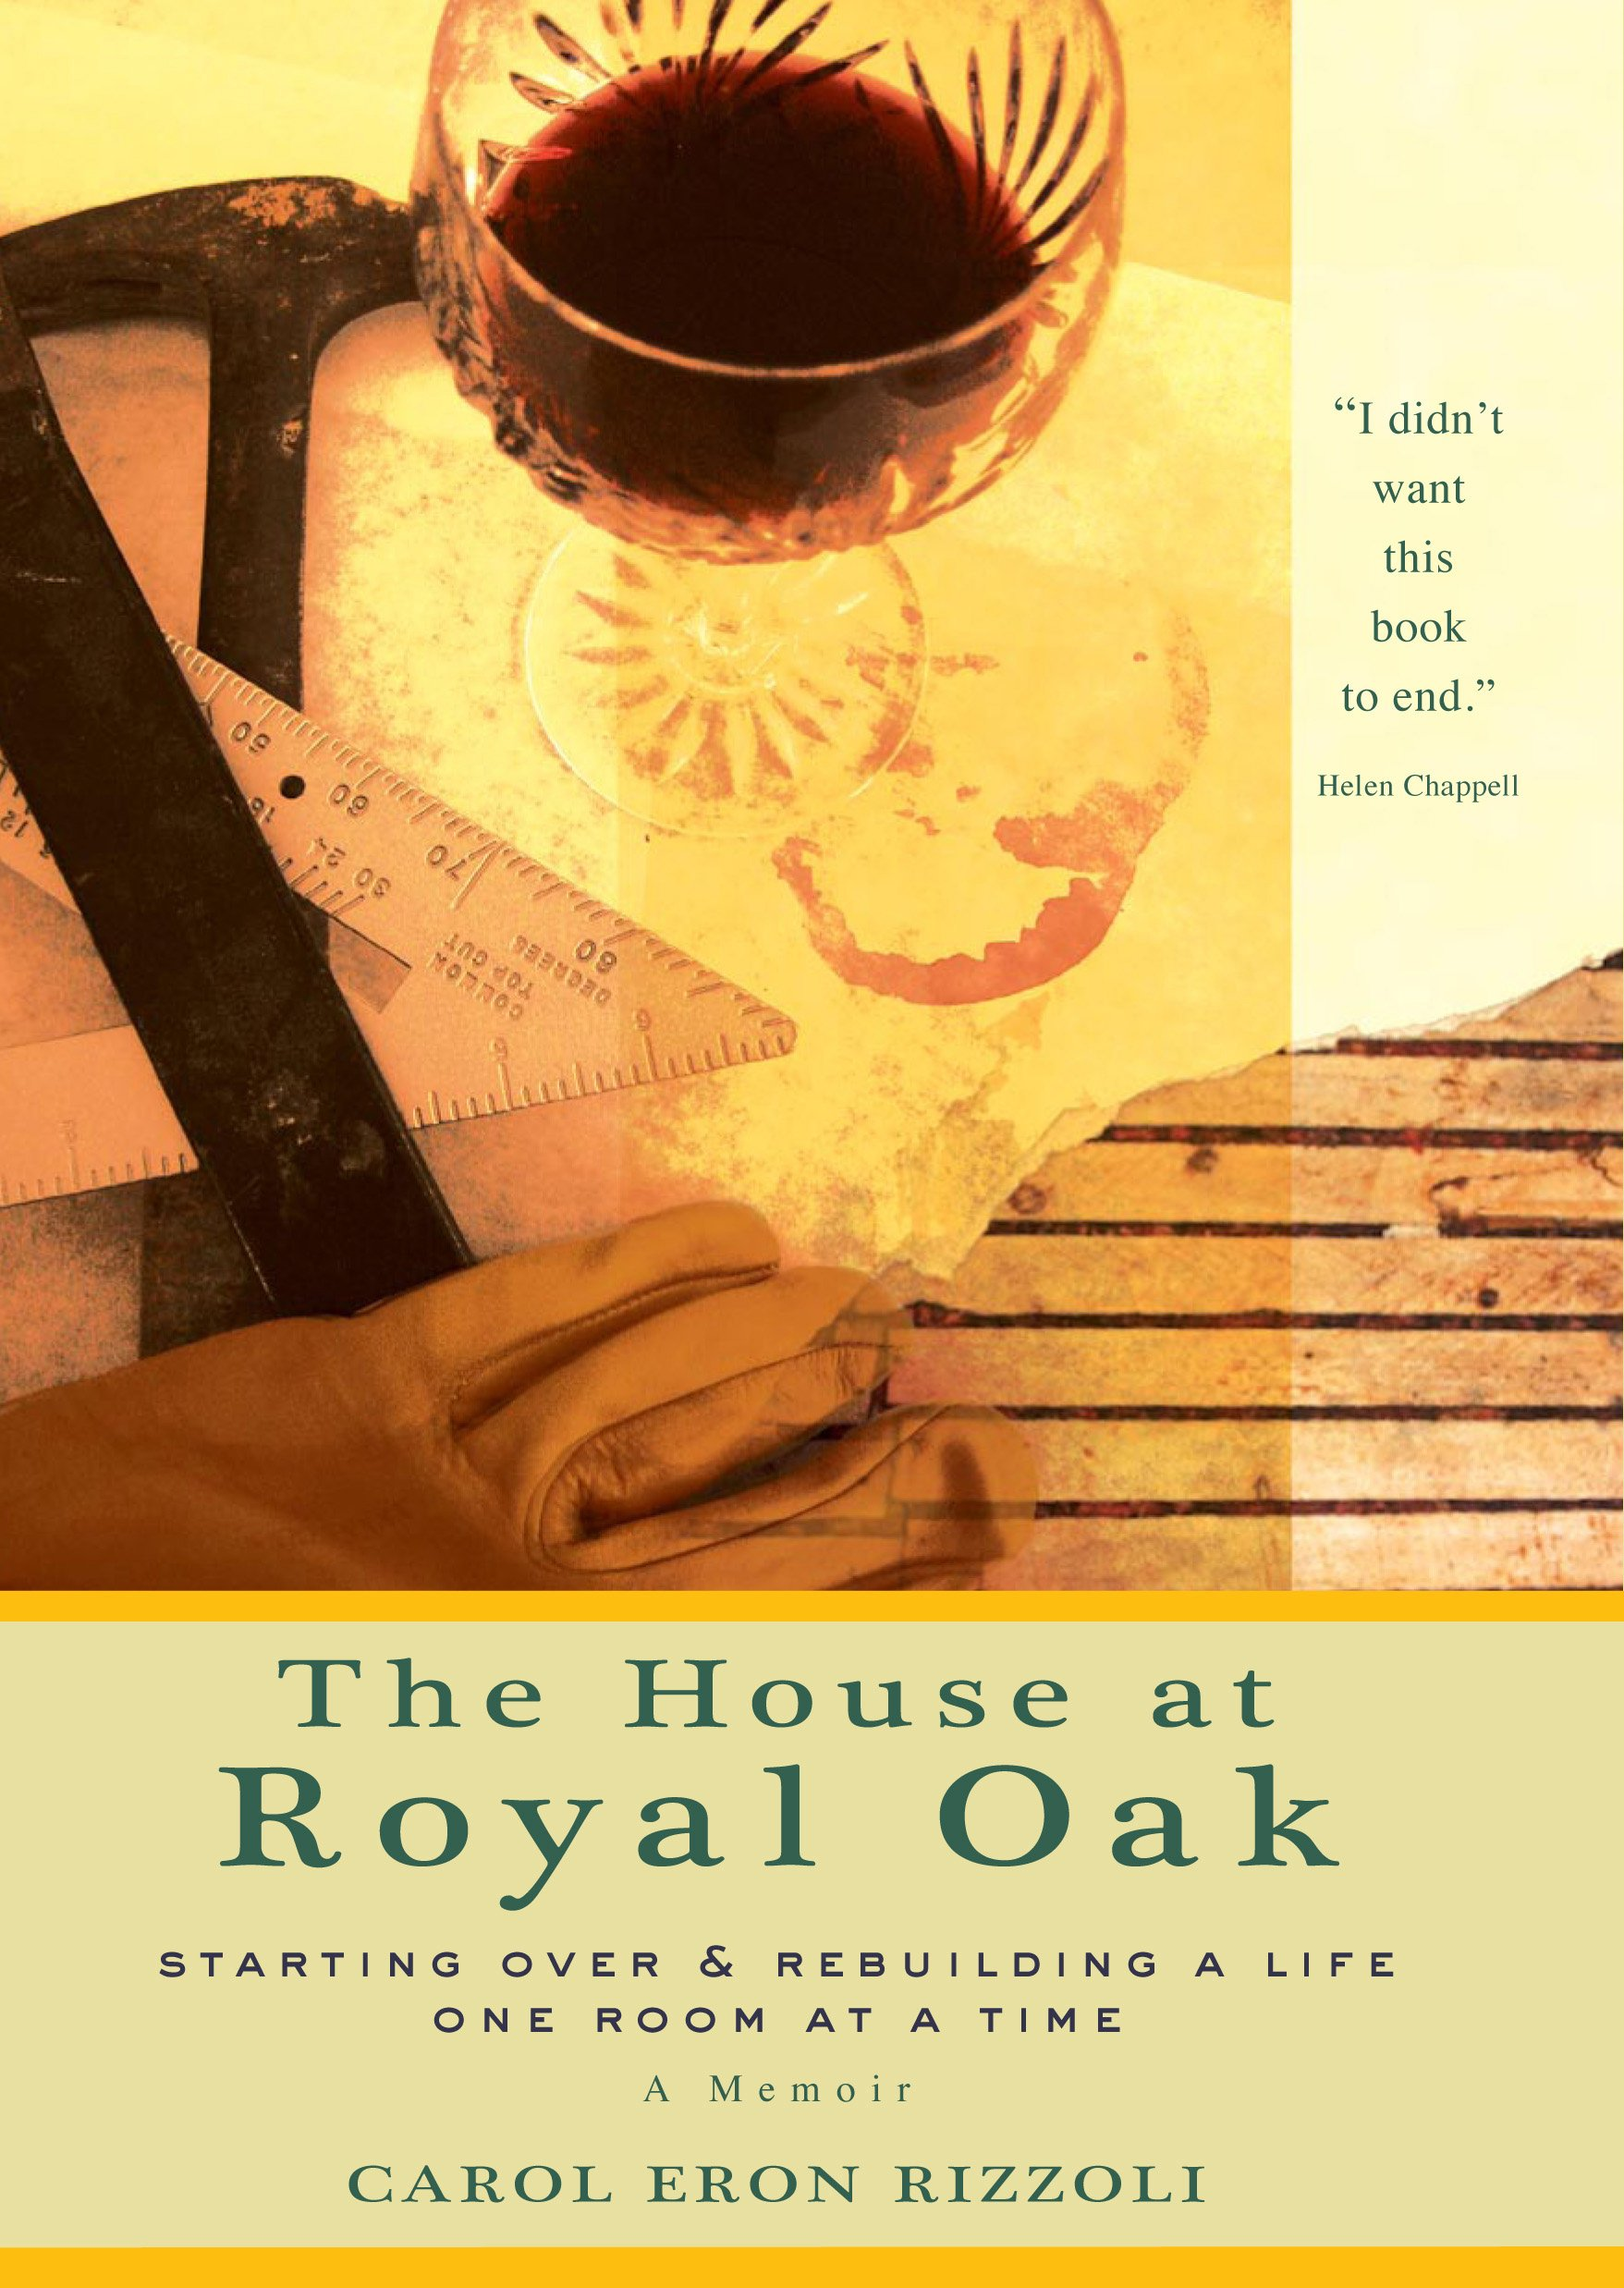 House at Royal Oak: Starting Over & Rebuilding a Life One Room at a Time ePub fb2 ebook